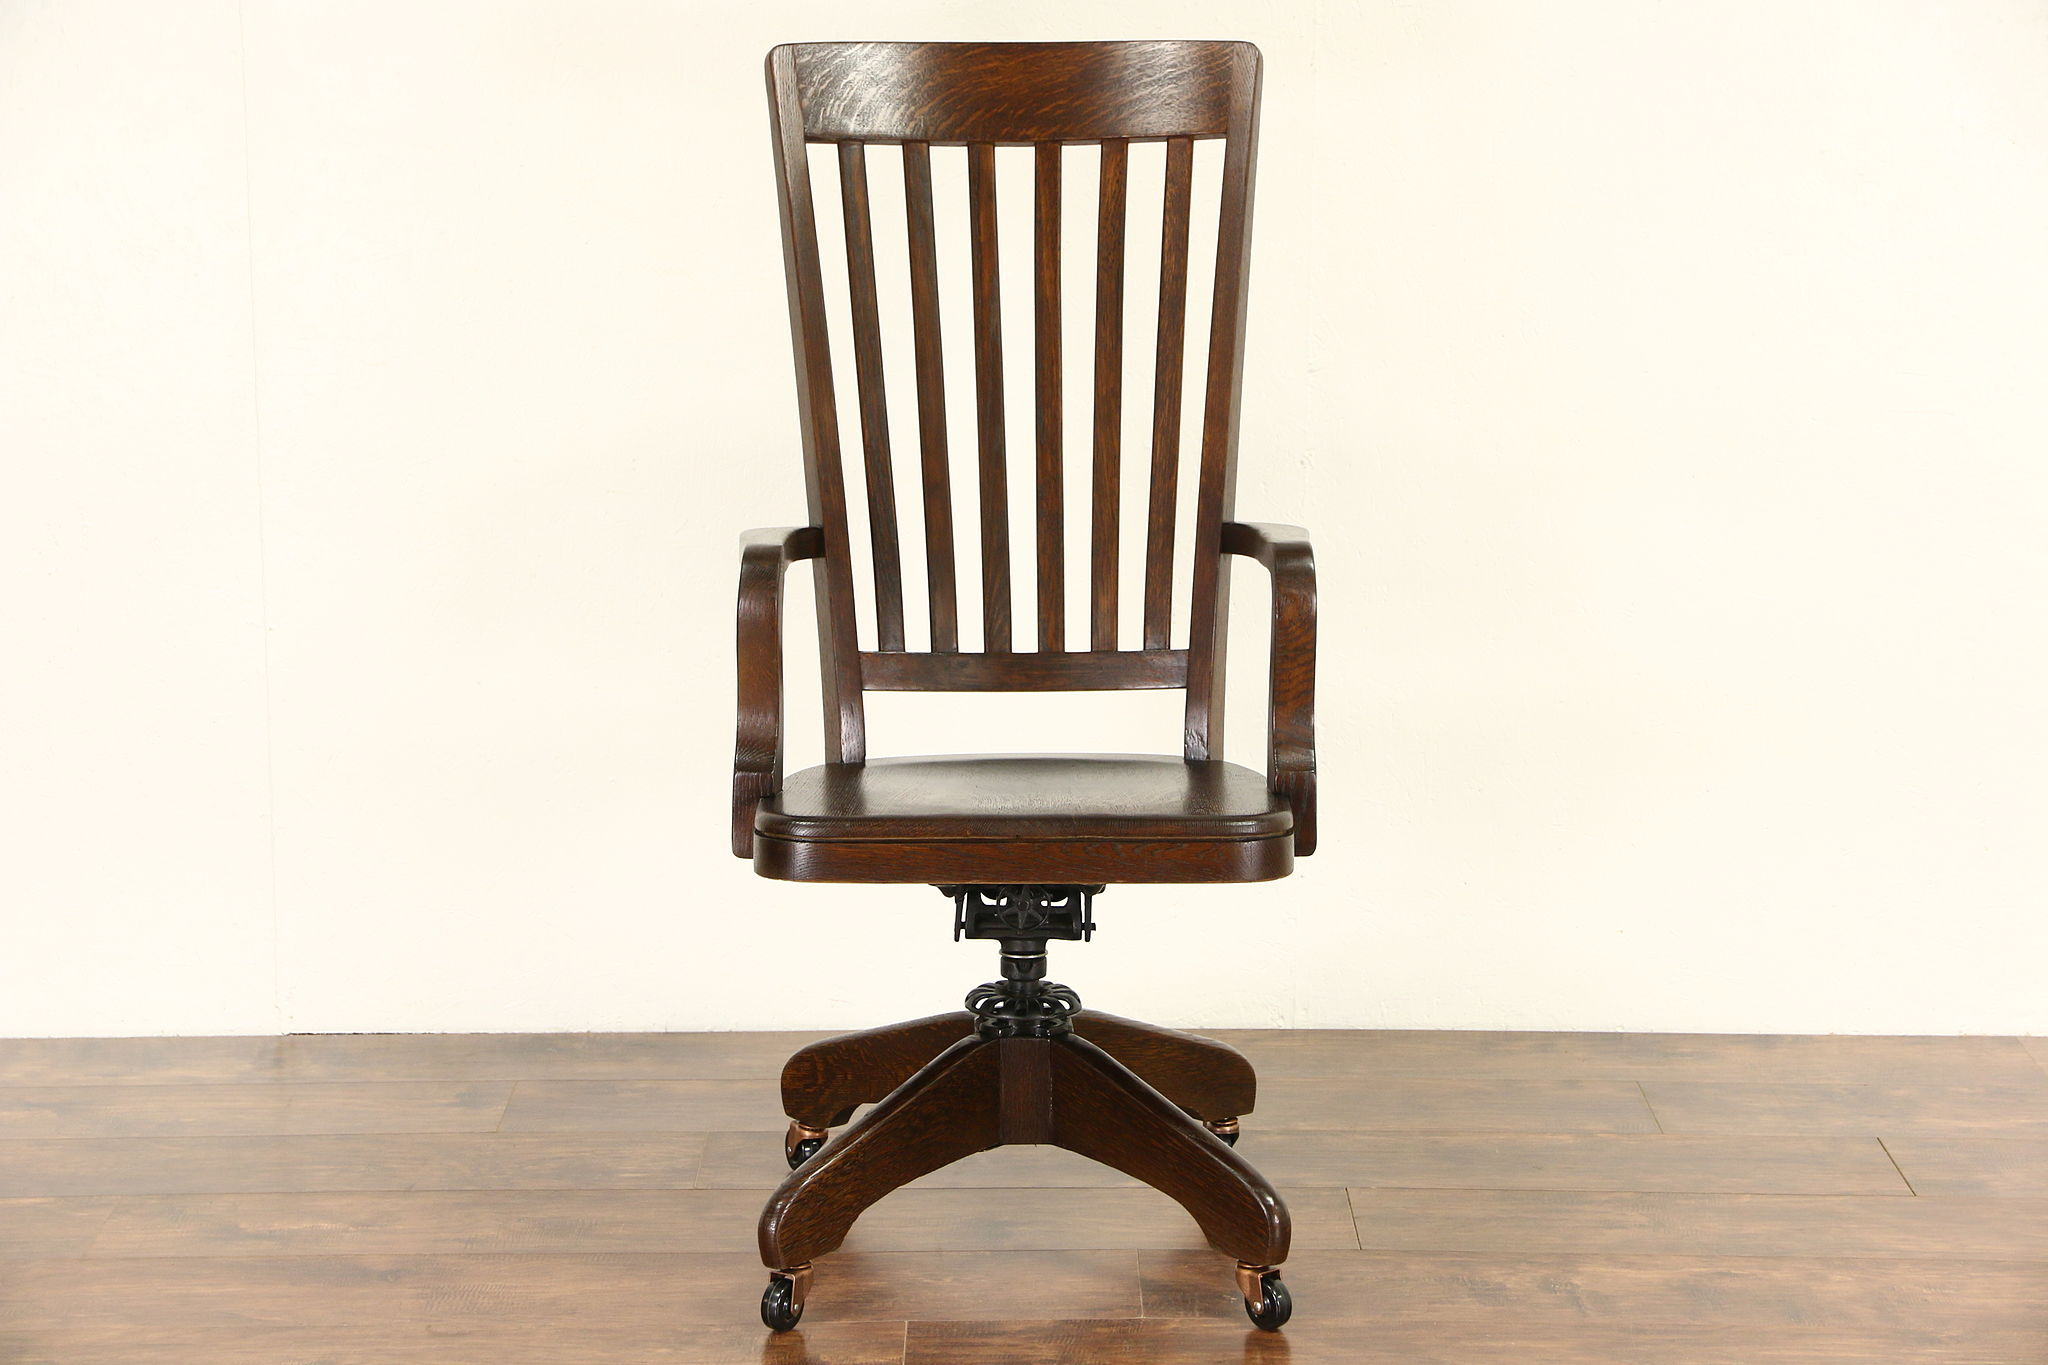 Oak Antique 1900 High Back Swivel Adjustable Library Or Office Desk Chair